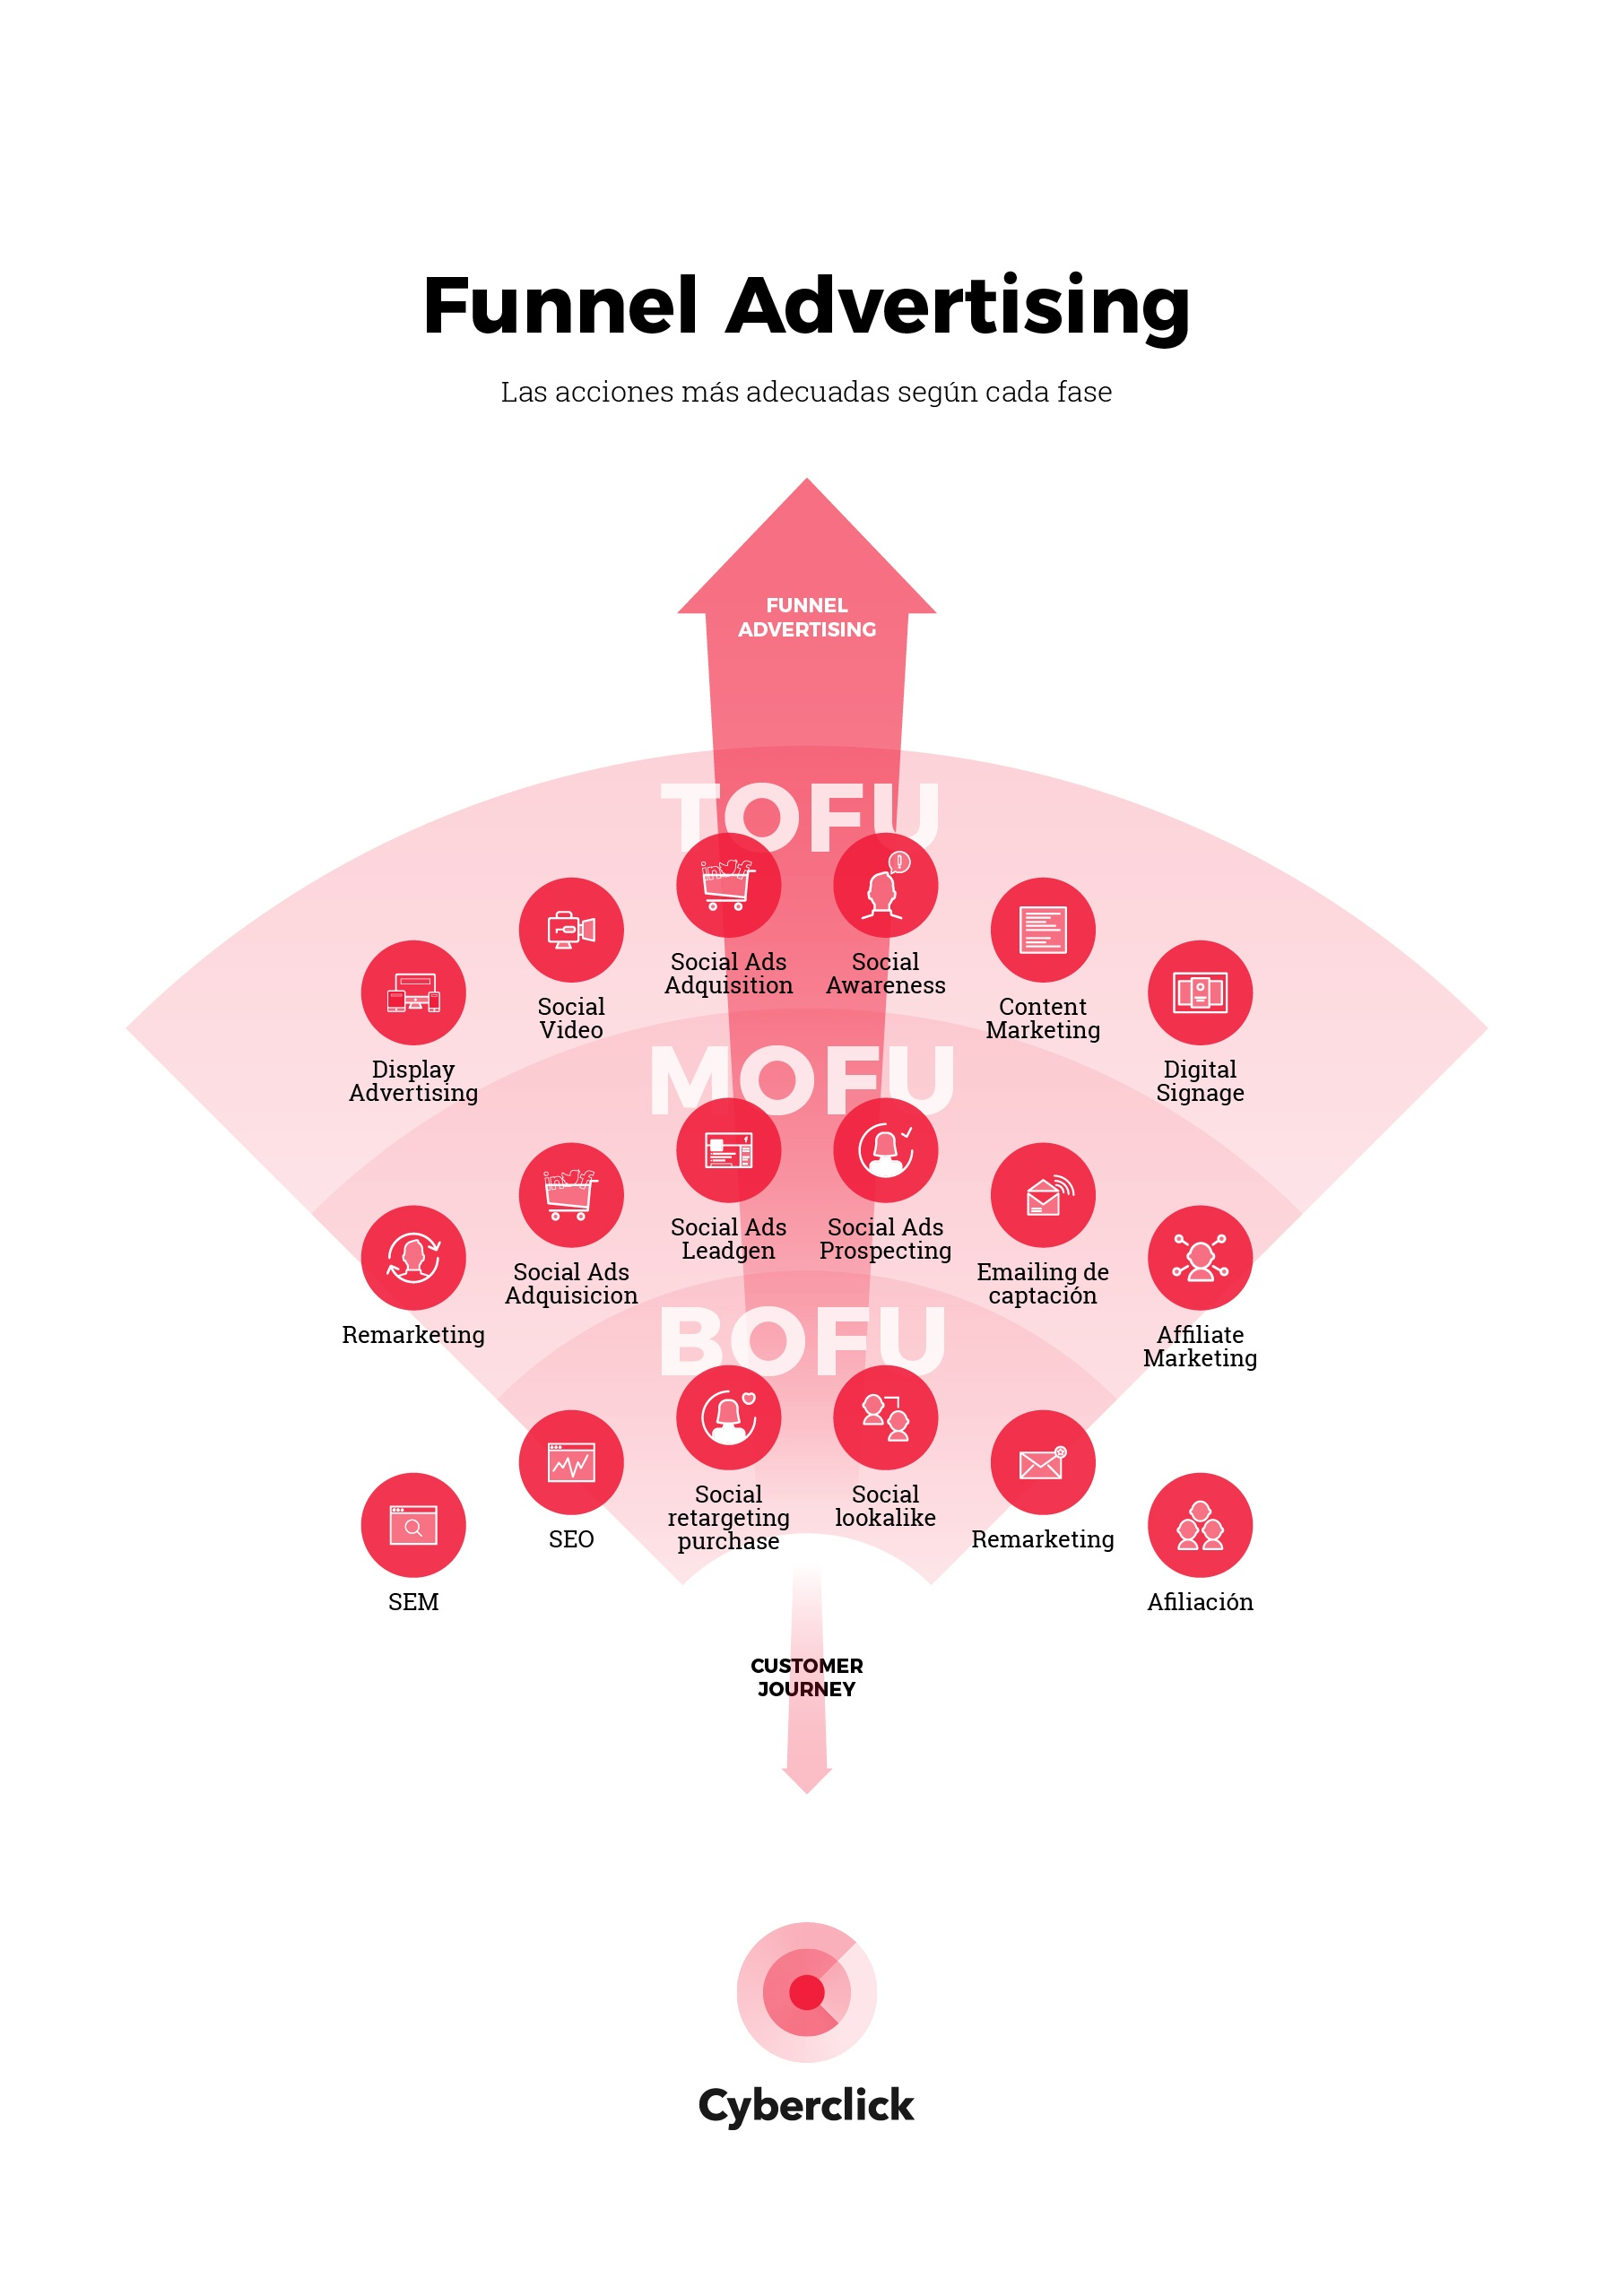 Funnel advertising Infographic - Cyberclick